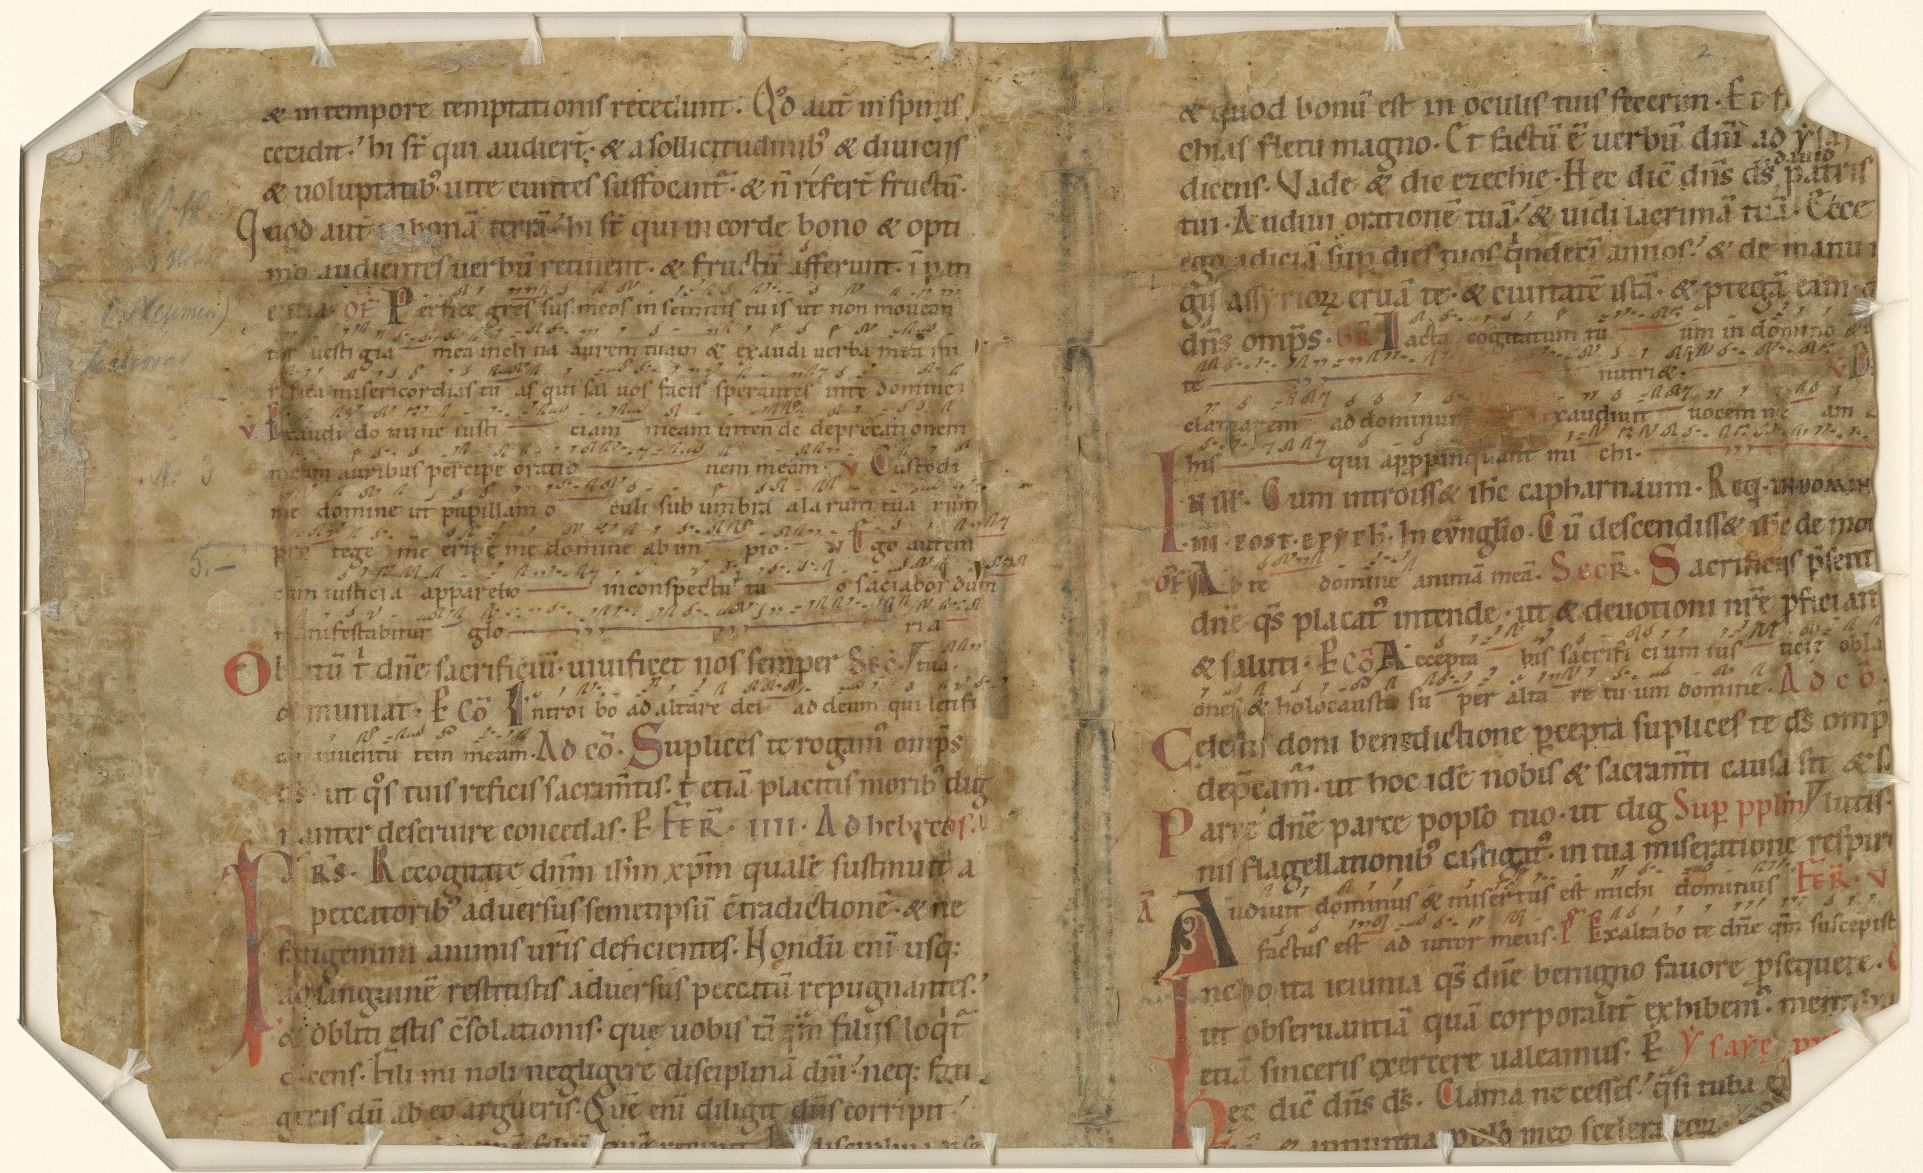 An example of a medieval manuscript in the Lilly Library collection.